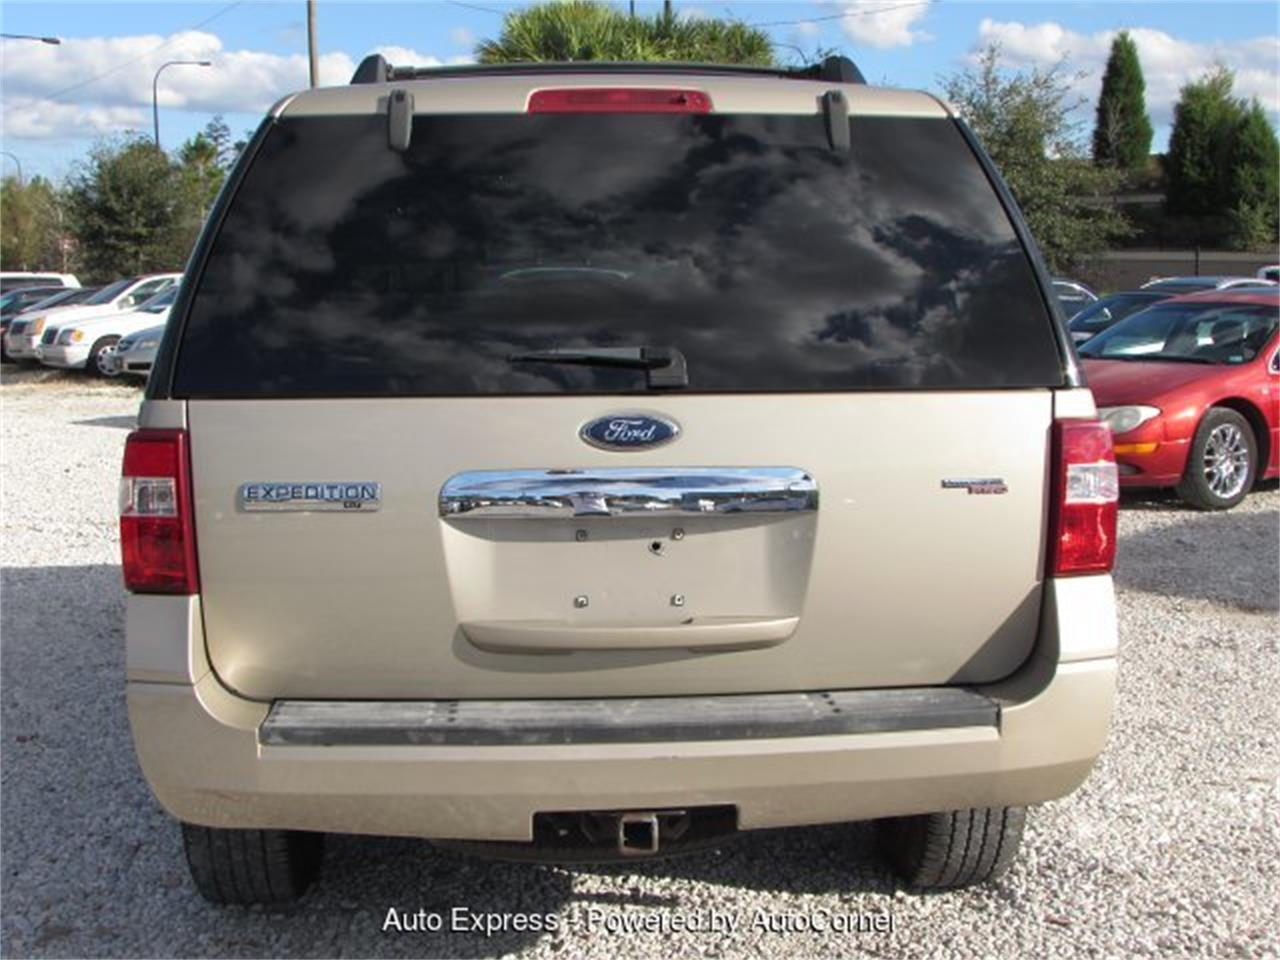 2008 Ford Expedition for sale in Orlando, FL – photo 6